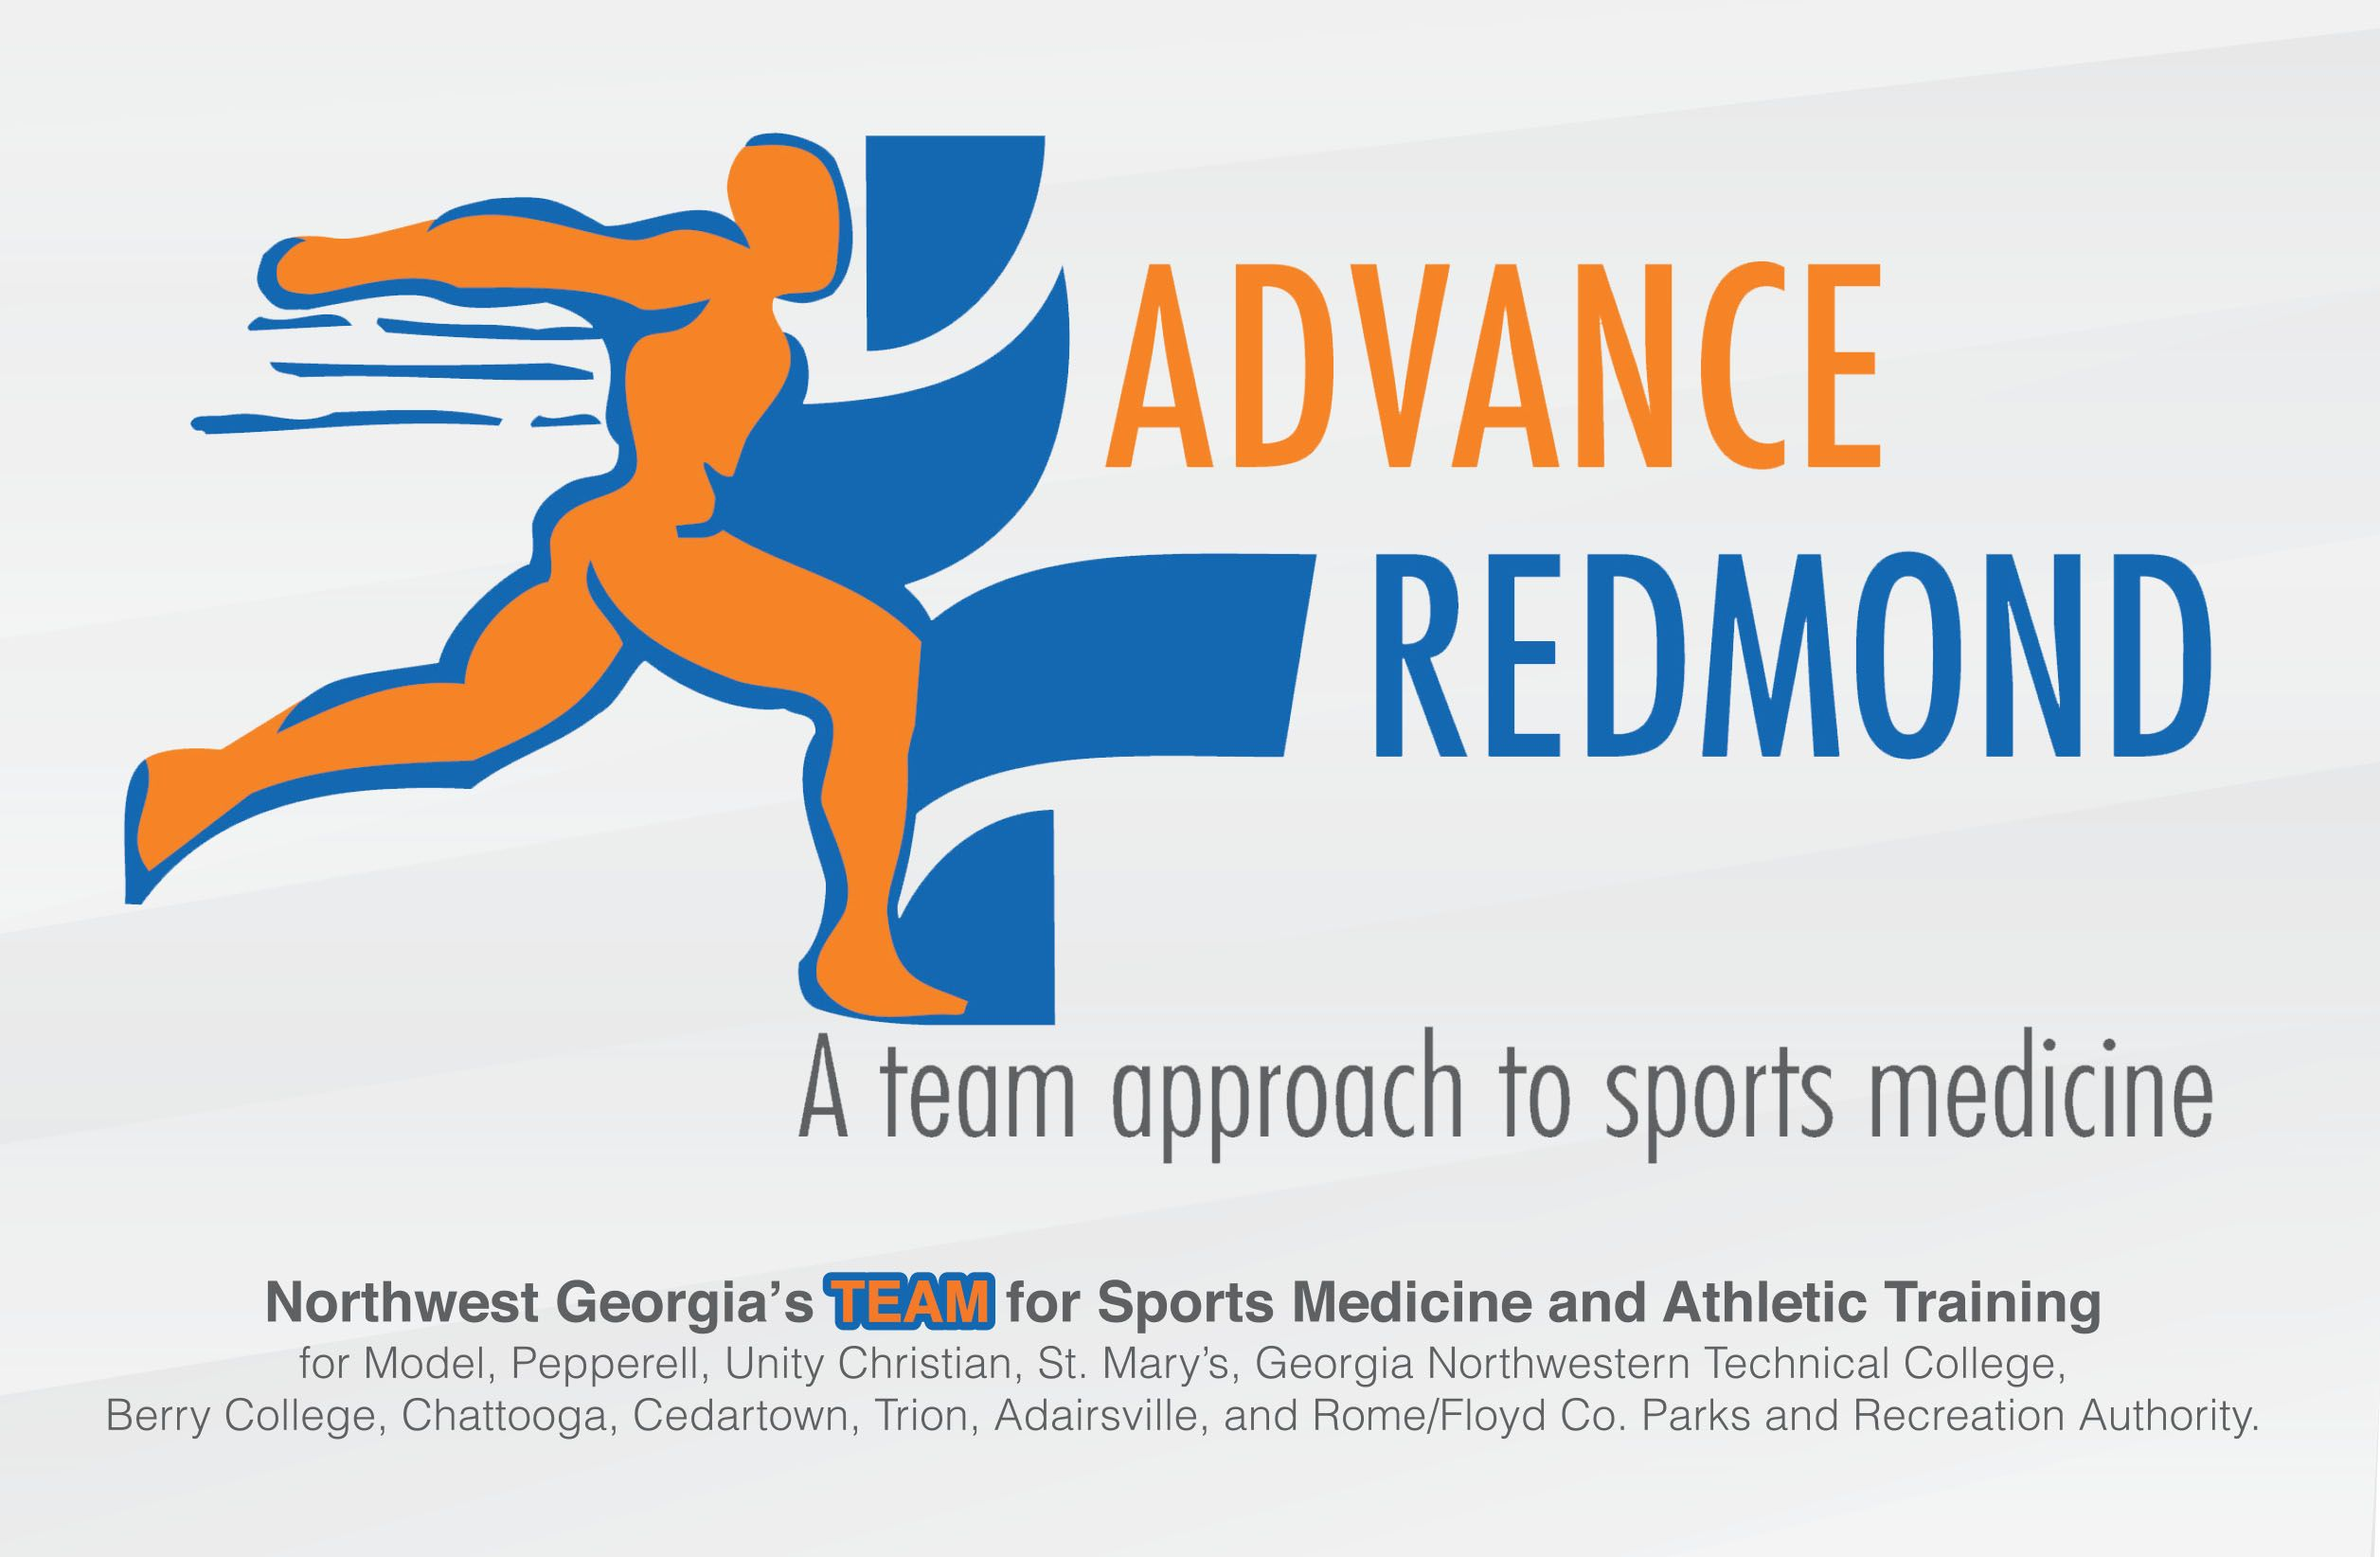 Pin by V3 Publications on Advertising Athletic training